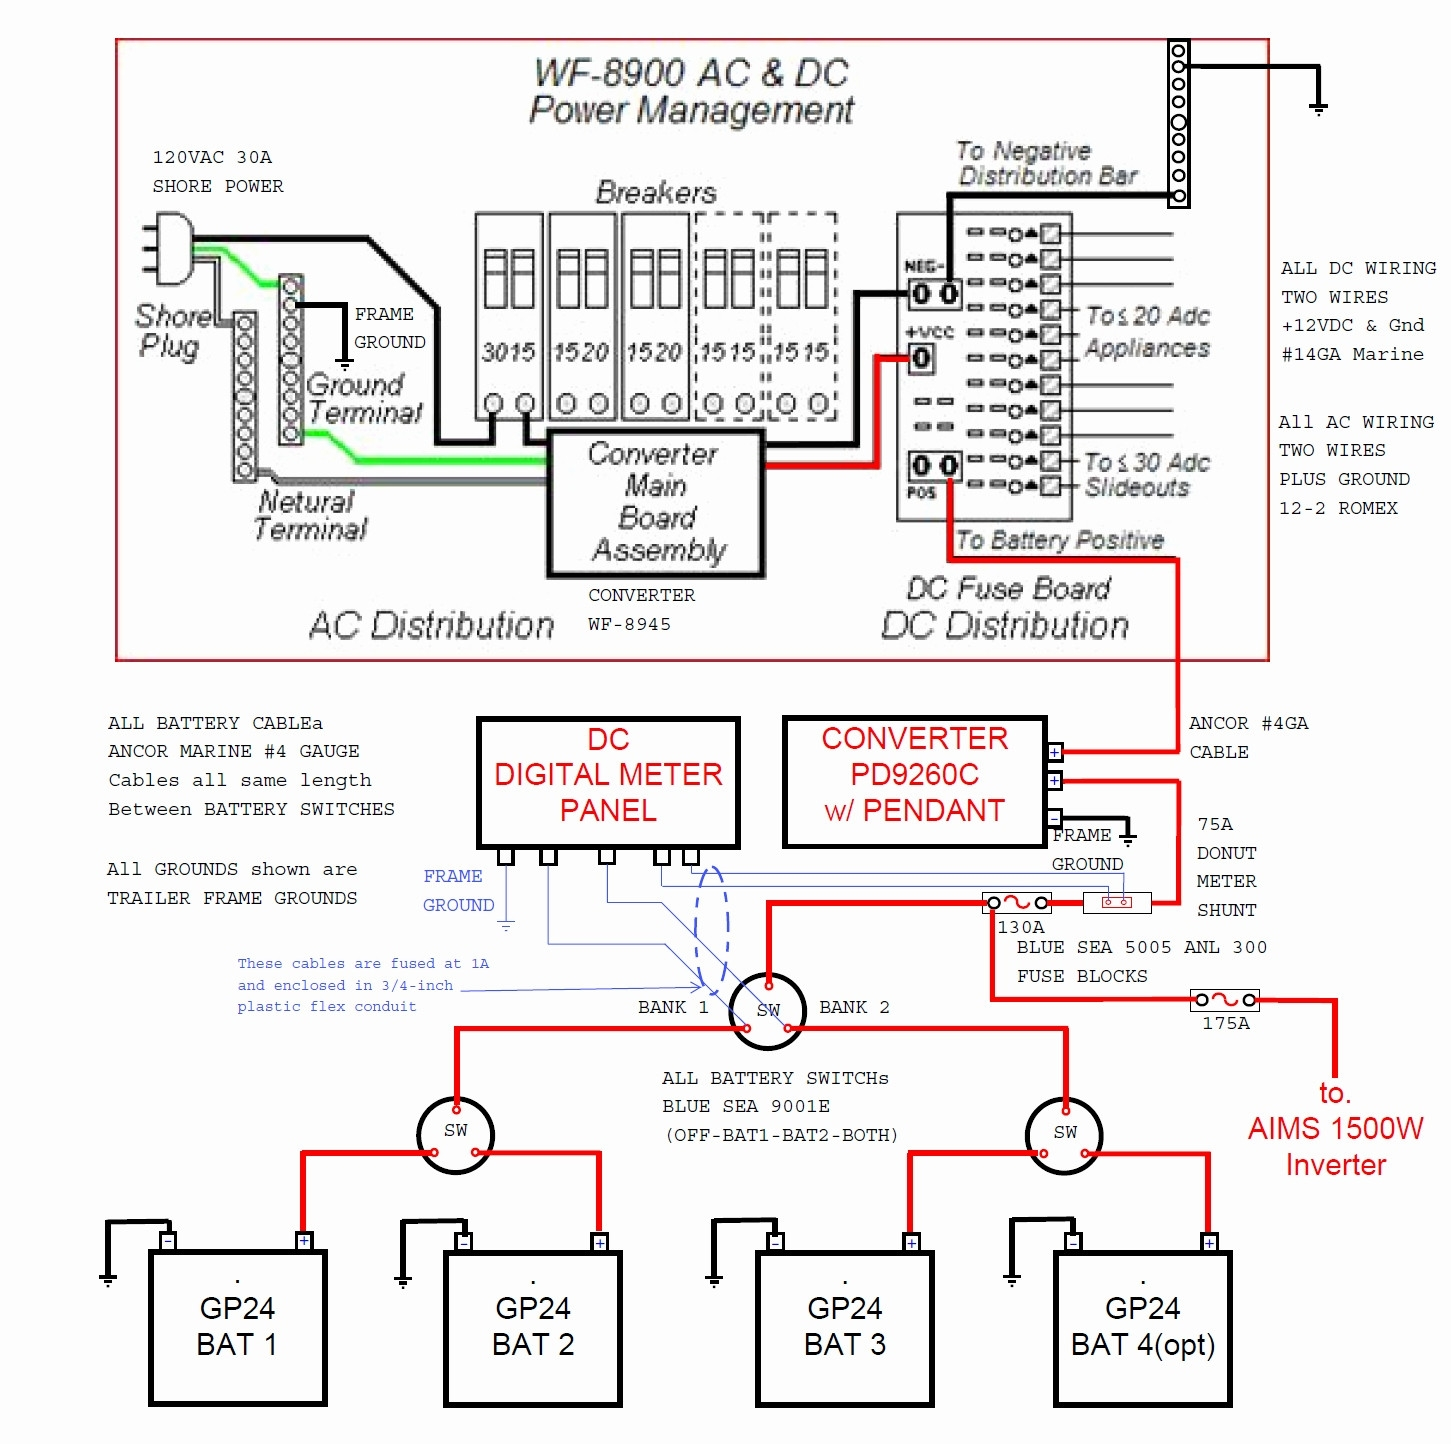 DIAGRAM] At Amp T Phone Wiring Diagram FULL Version HD ... on wiring a rv power panel, wiring rv camper, 50 amp rv park service, wiring 50 amp rv breaker, wiring rv converters, wiring 50 amp rv supplies,